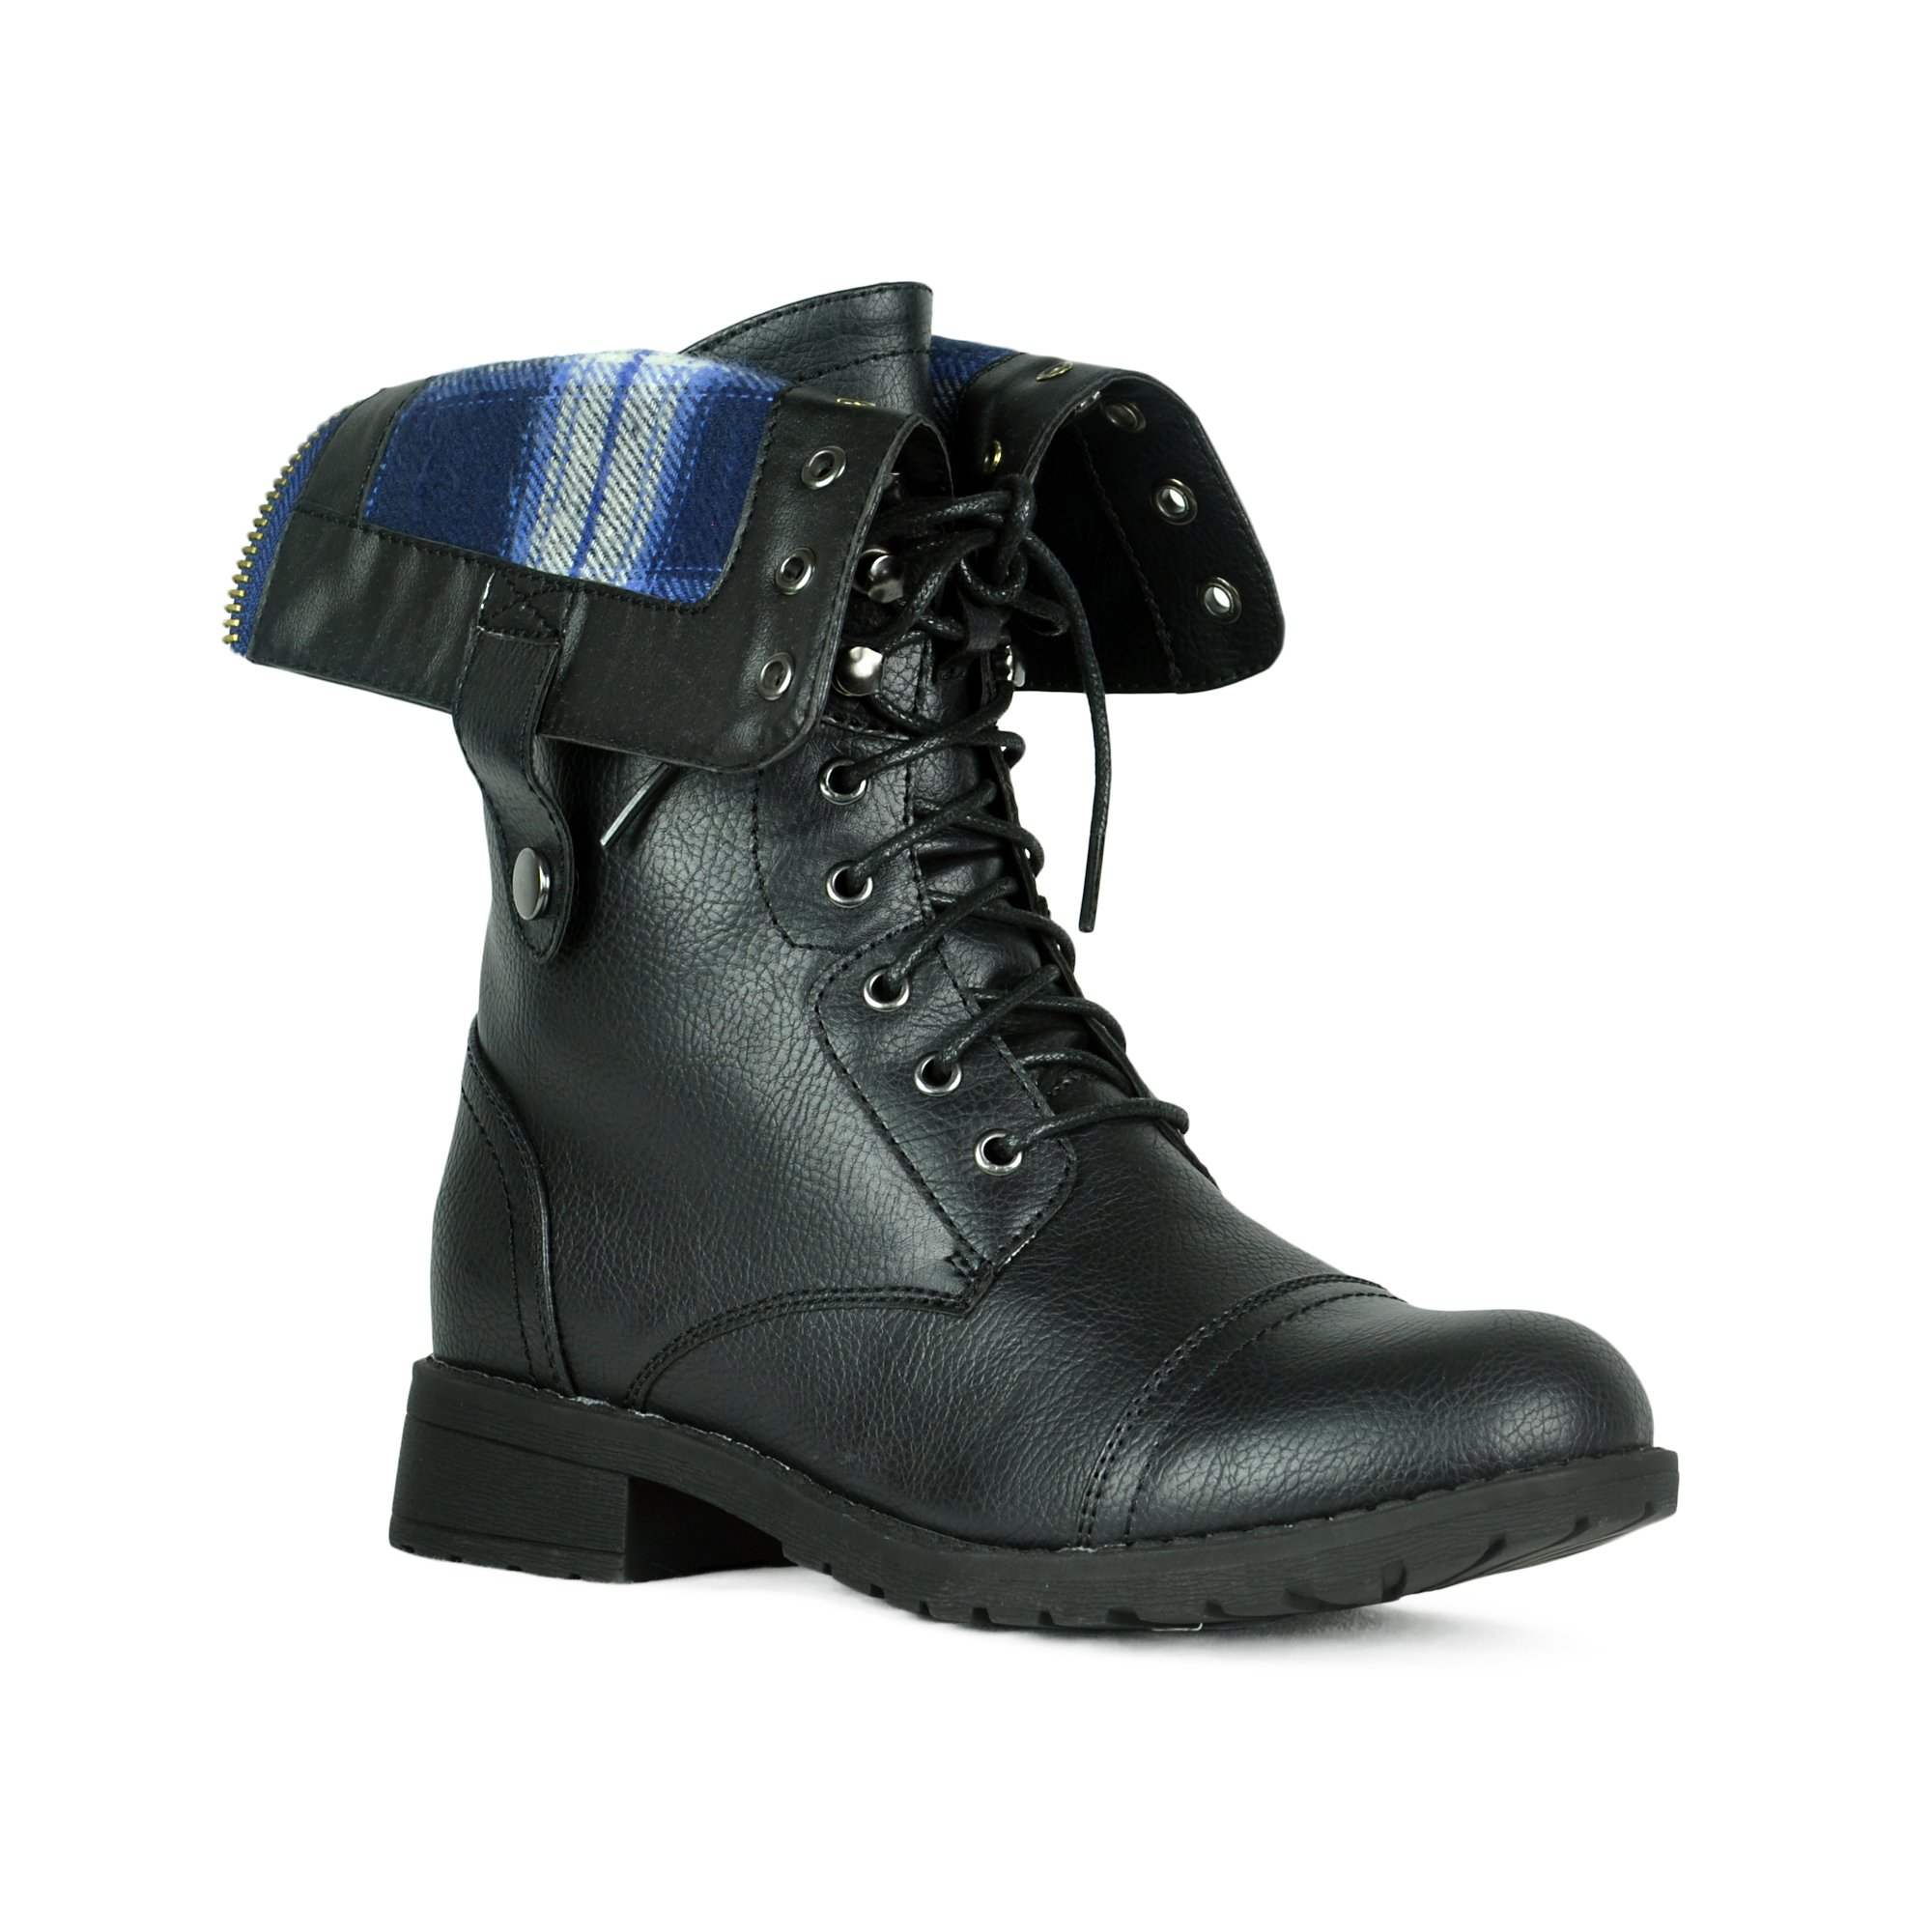 Women's Winter Combat Booties Ankle to Mid Calf Lug Sole Stacked Heel Military Motorcycle Boots Black 10